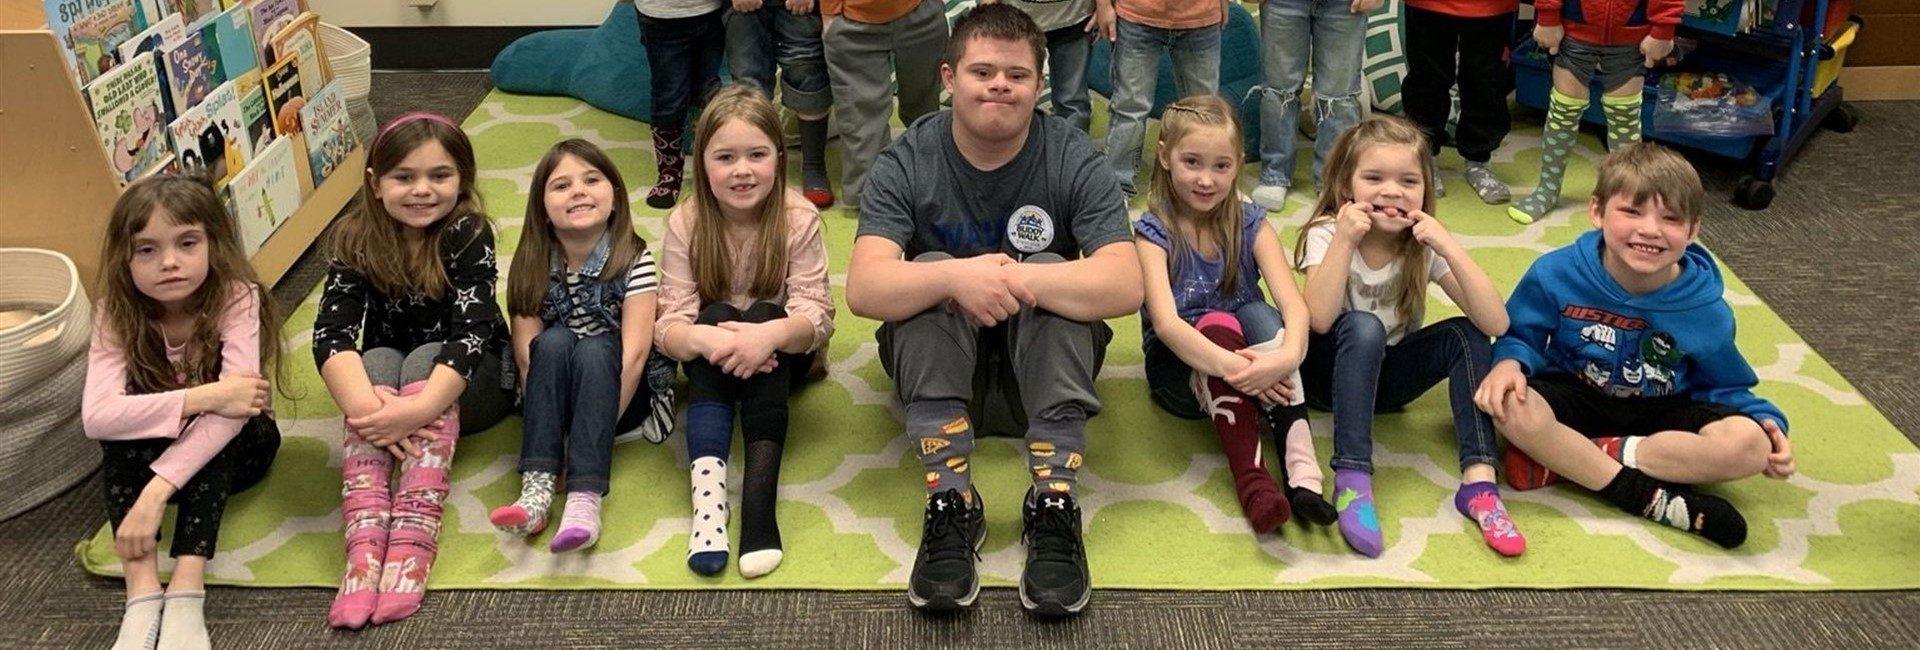 Rock Your Socks - For World Down Syndrome Day